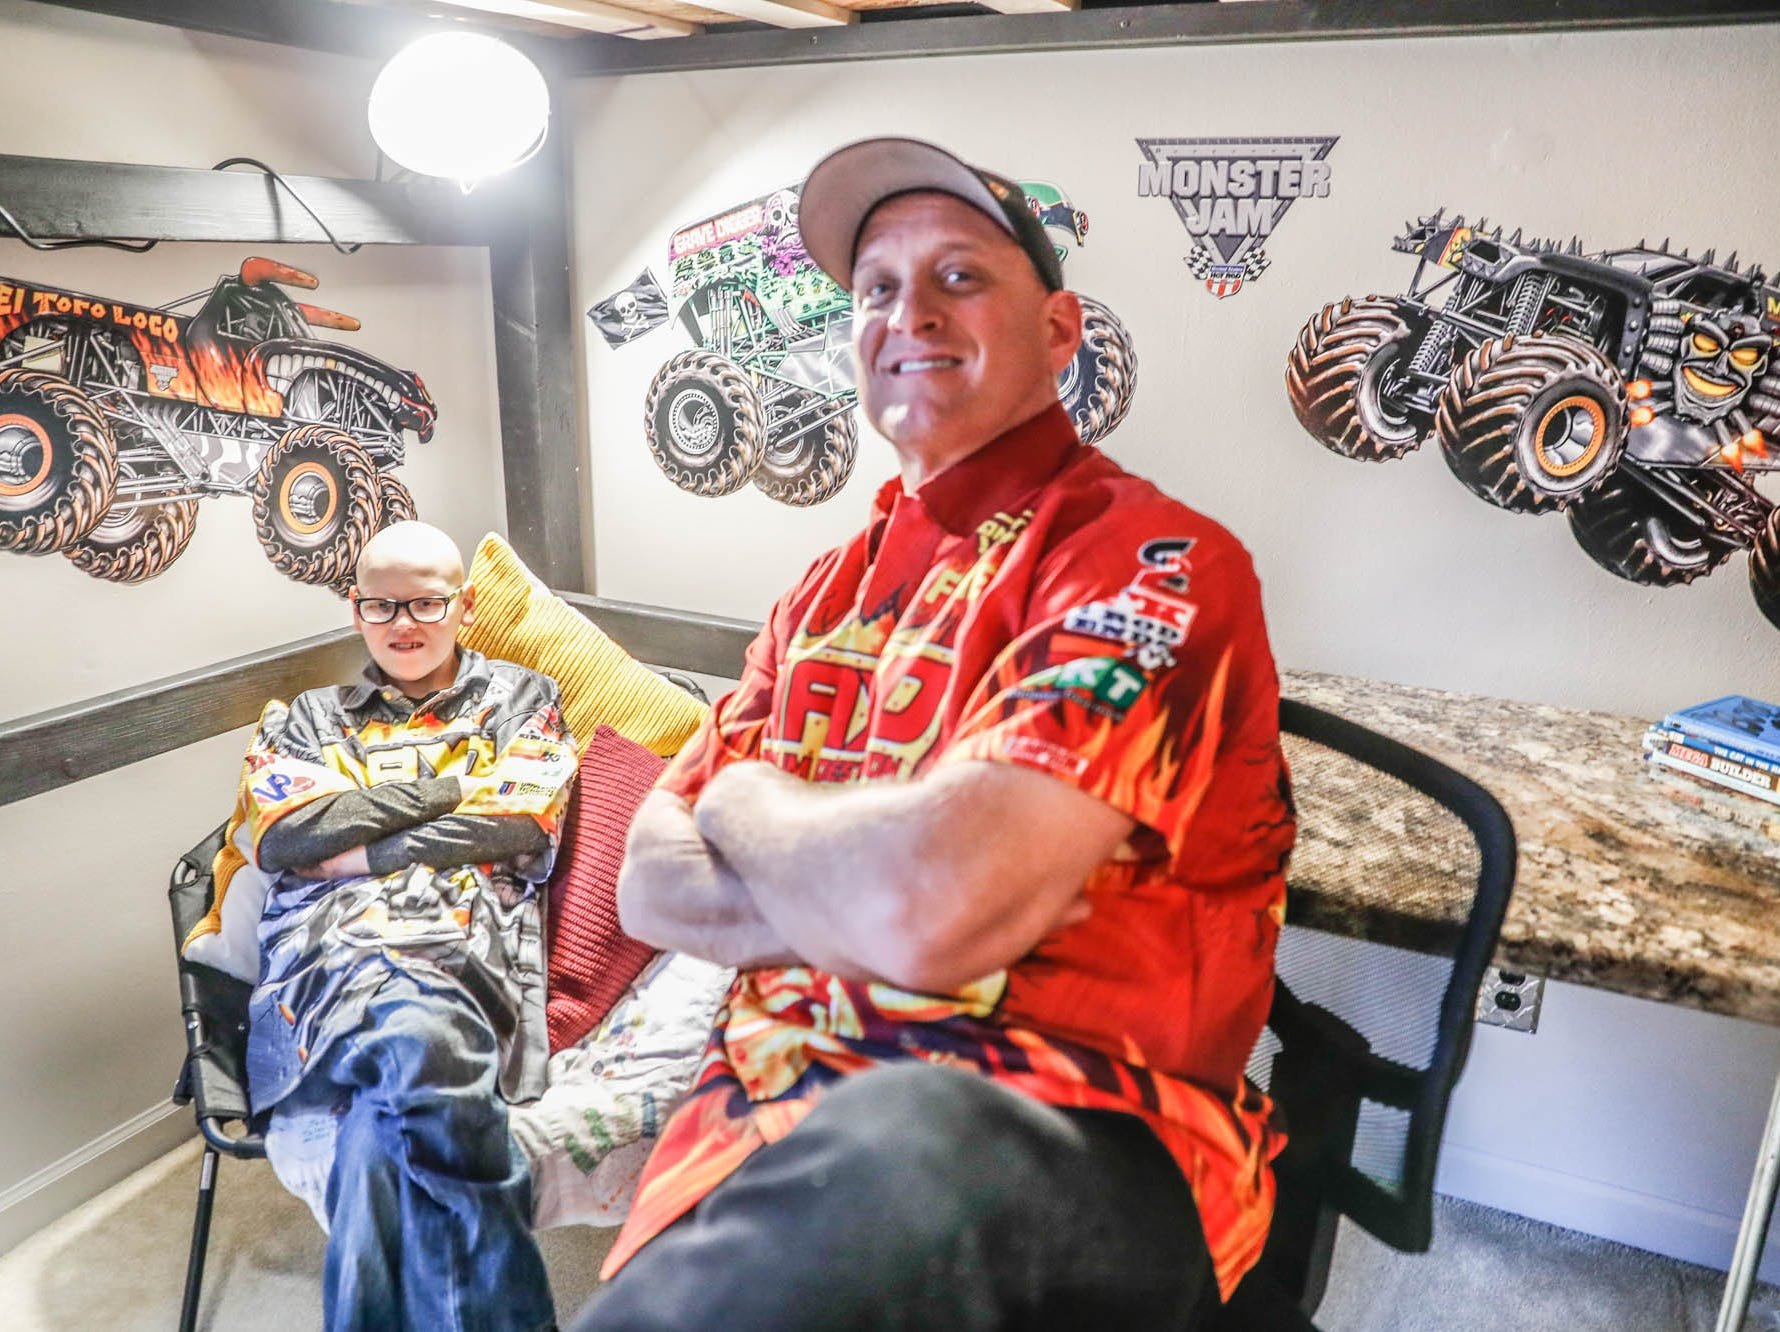 St. Barnabas Catholic School fourth grader, James Egold, who just completed chemo therapy, gets to see his newly decorated room with Maximum Destruction monster truck driver Tom Meents, at Egold's south side home on Thursday, Feb. 7, 2019. The visit was thanks to a team up by Monster Jam and Love Your Melon to remodel Egold's room at home while Egold met with Maximum Destruction monster truck driver Tom Meents.